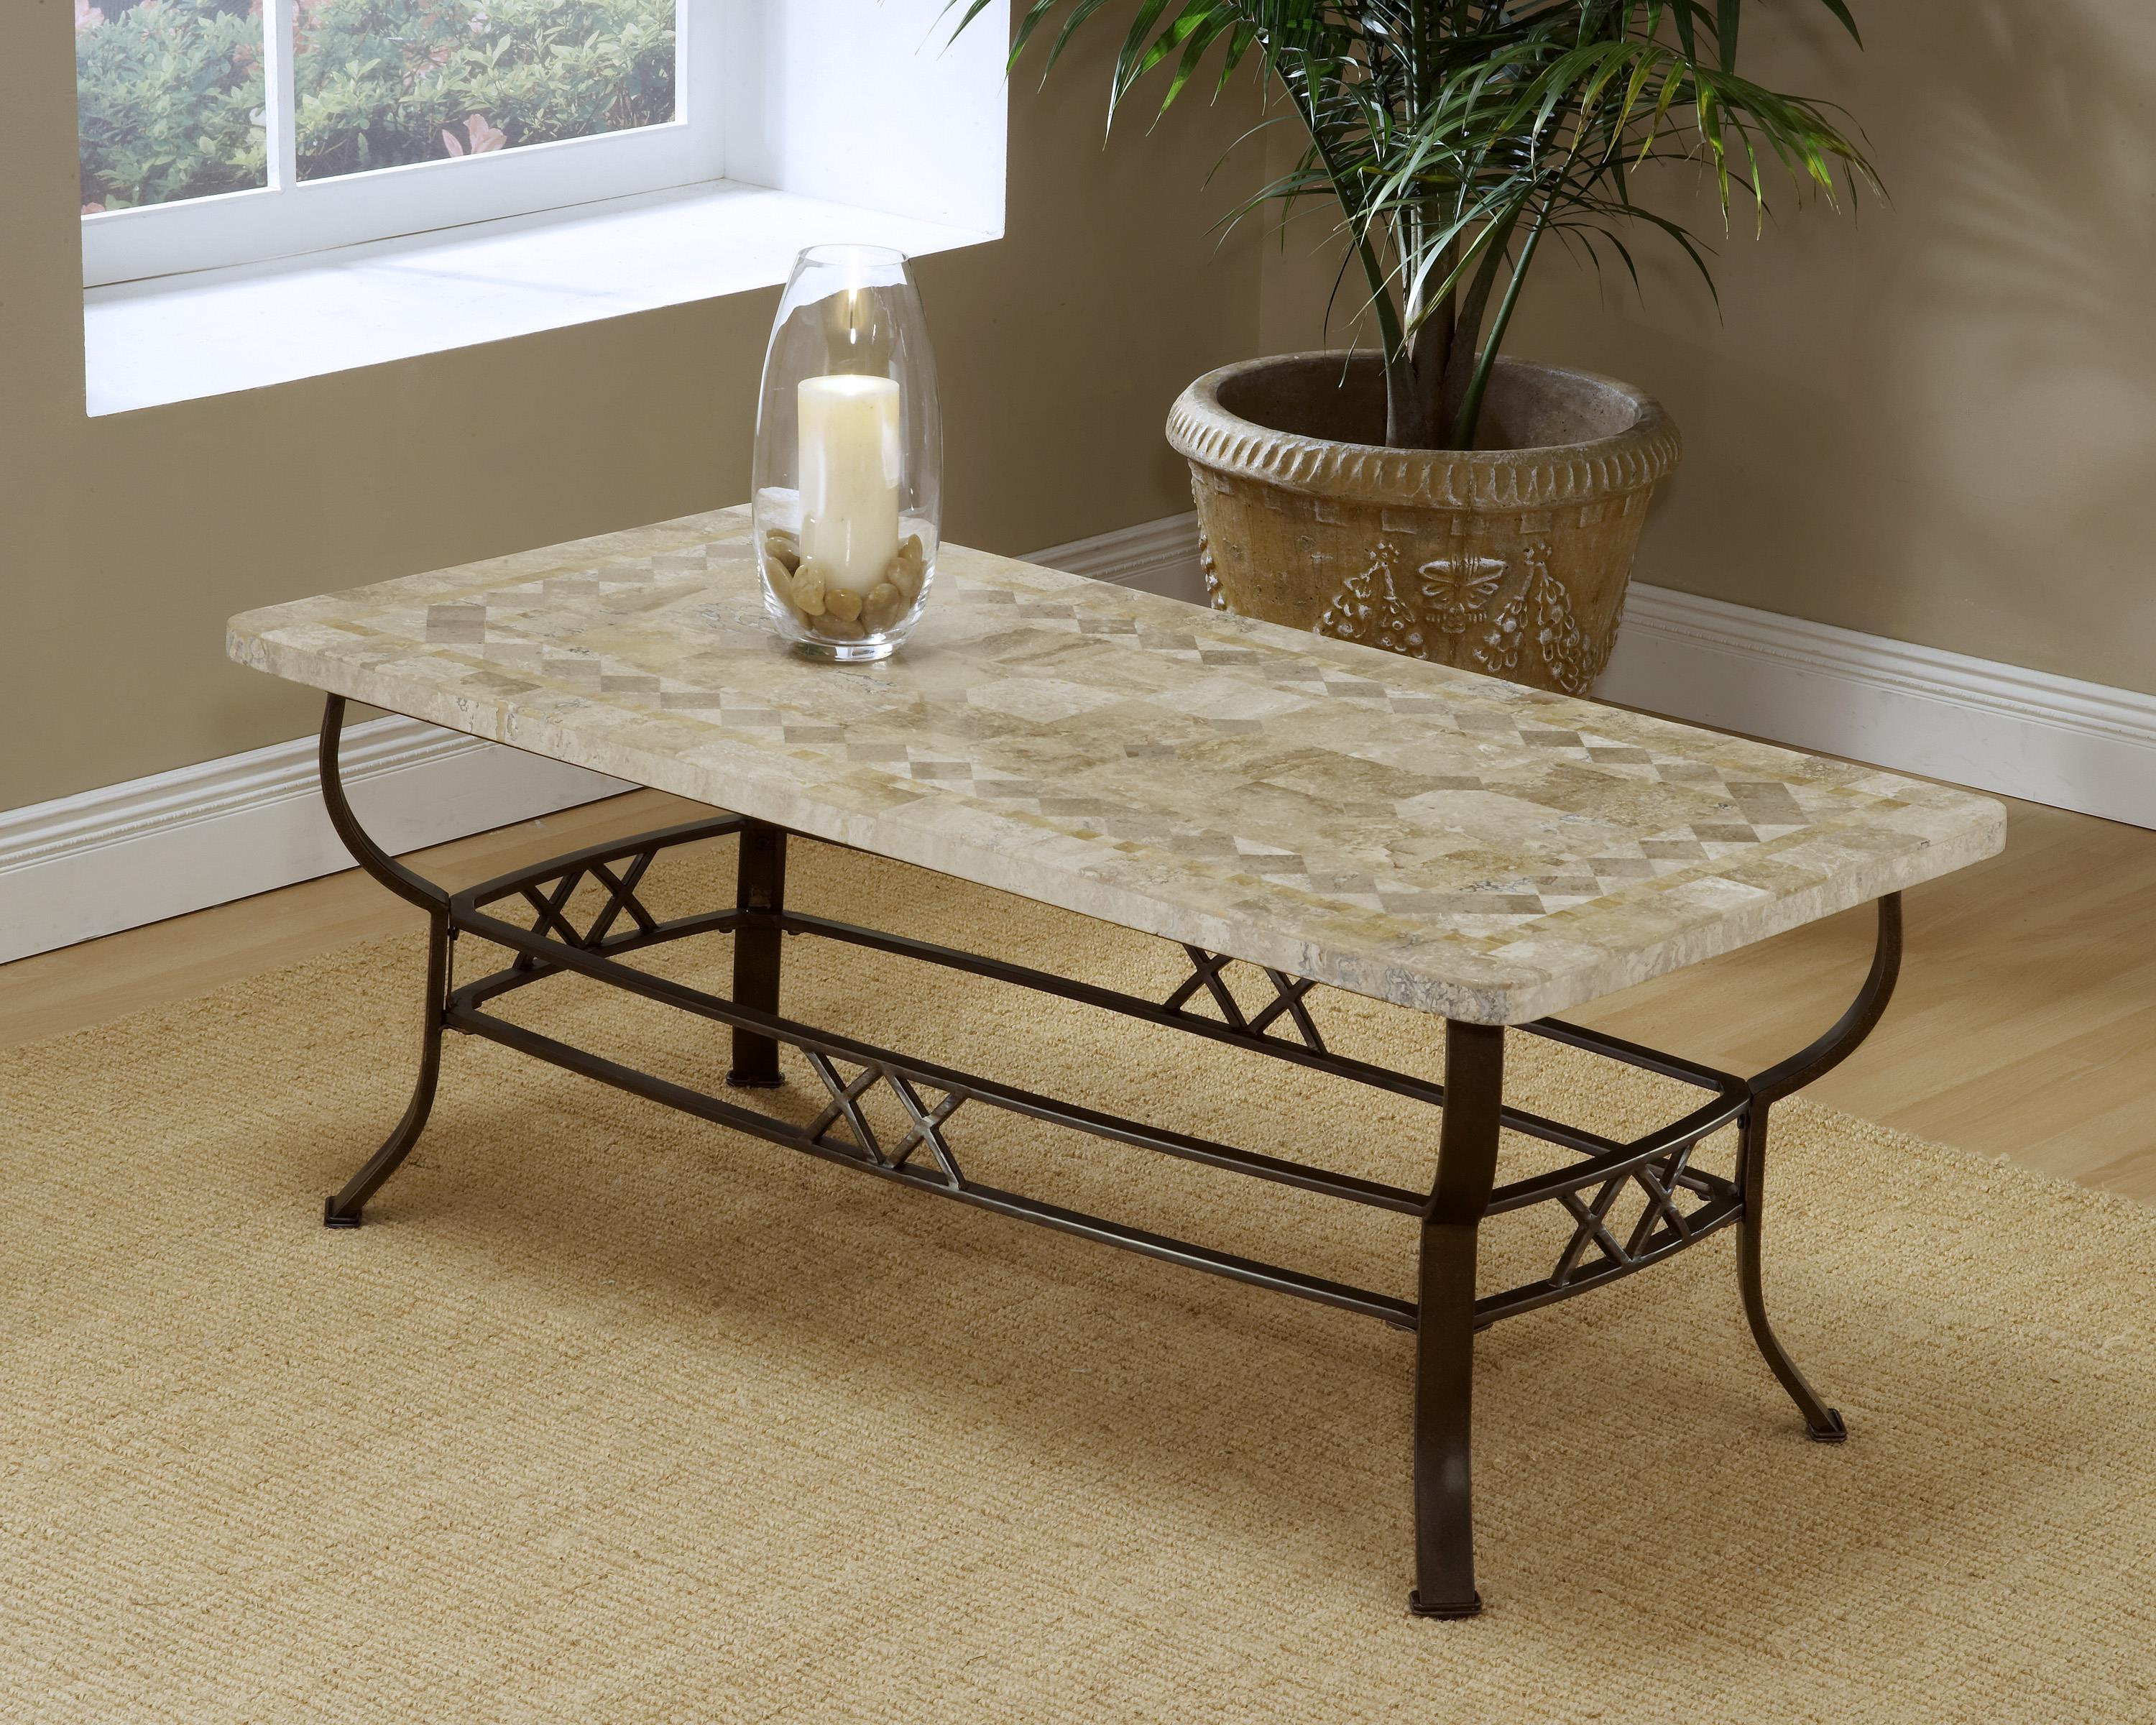 Hillsdale Occasional Tables Brookside Fossil Coffee Table - Item Number: 4815OTC